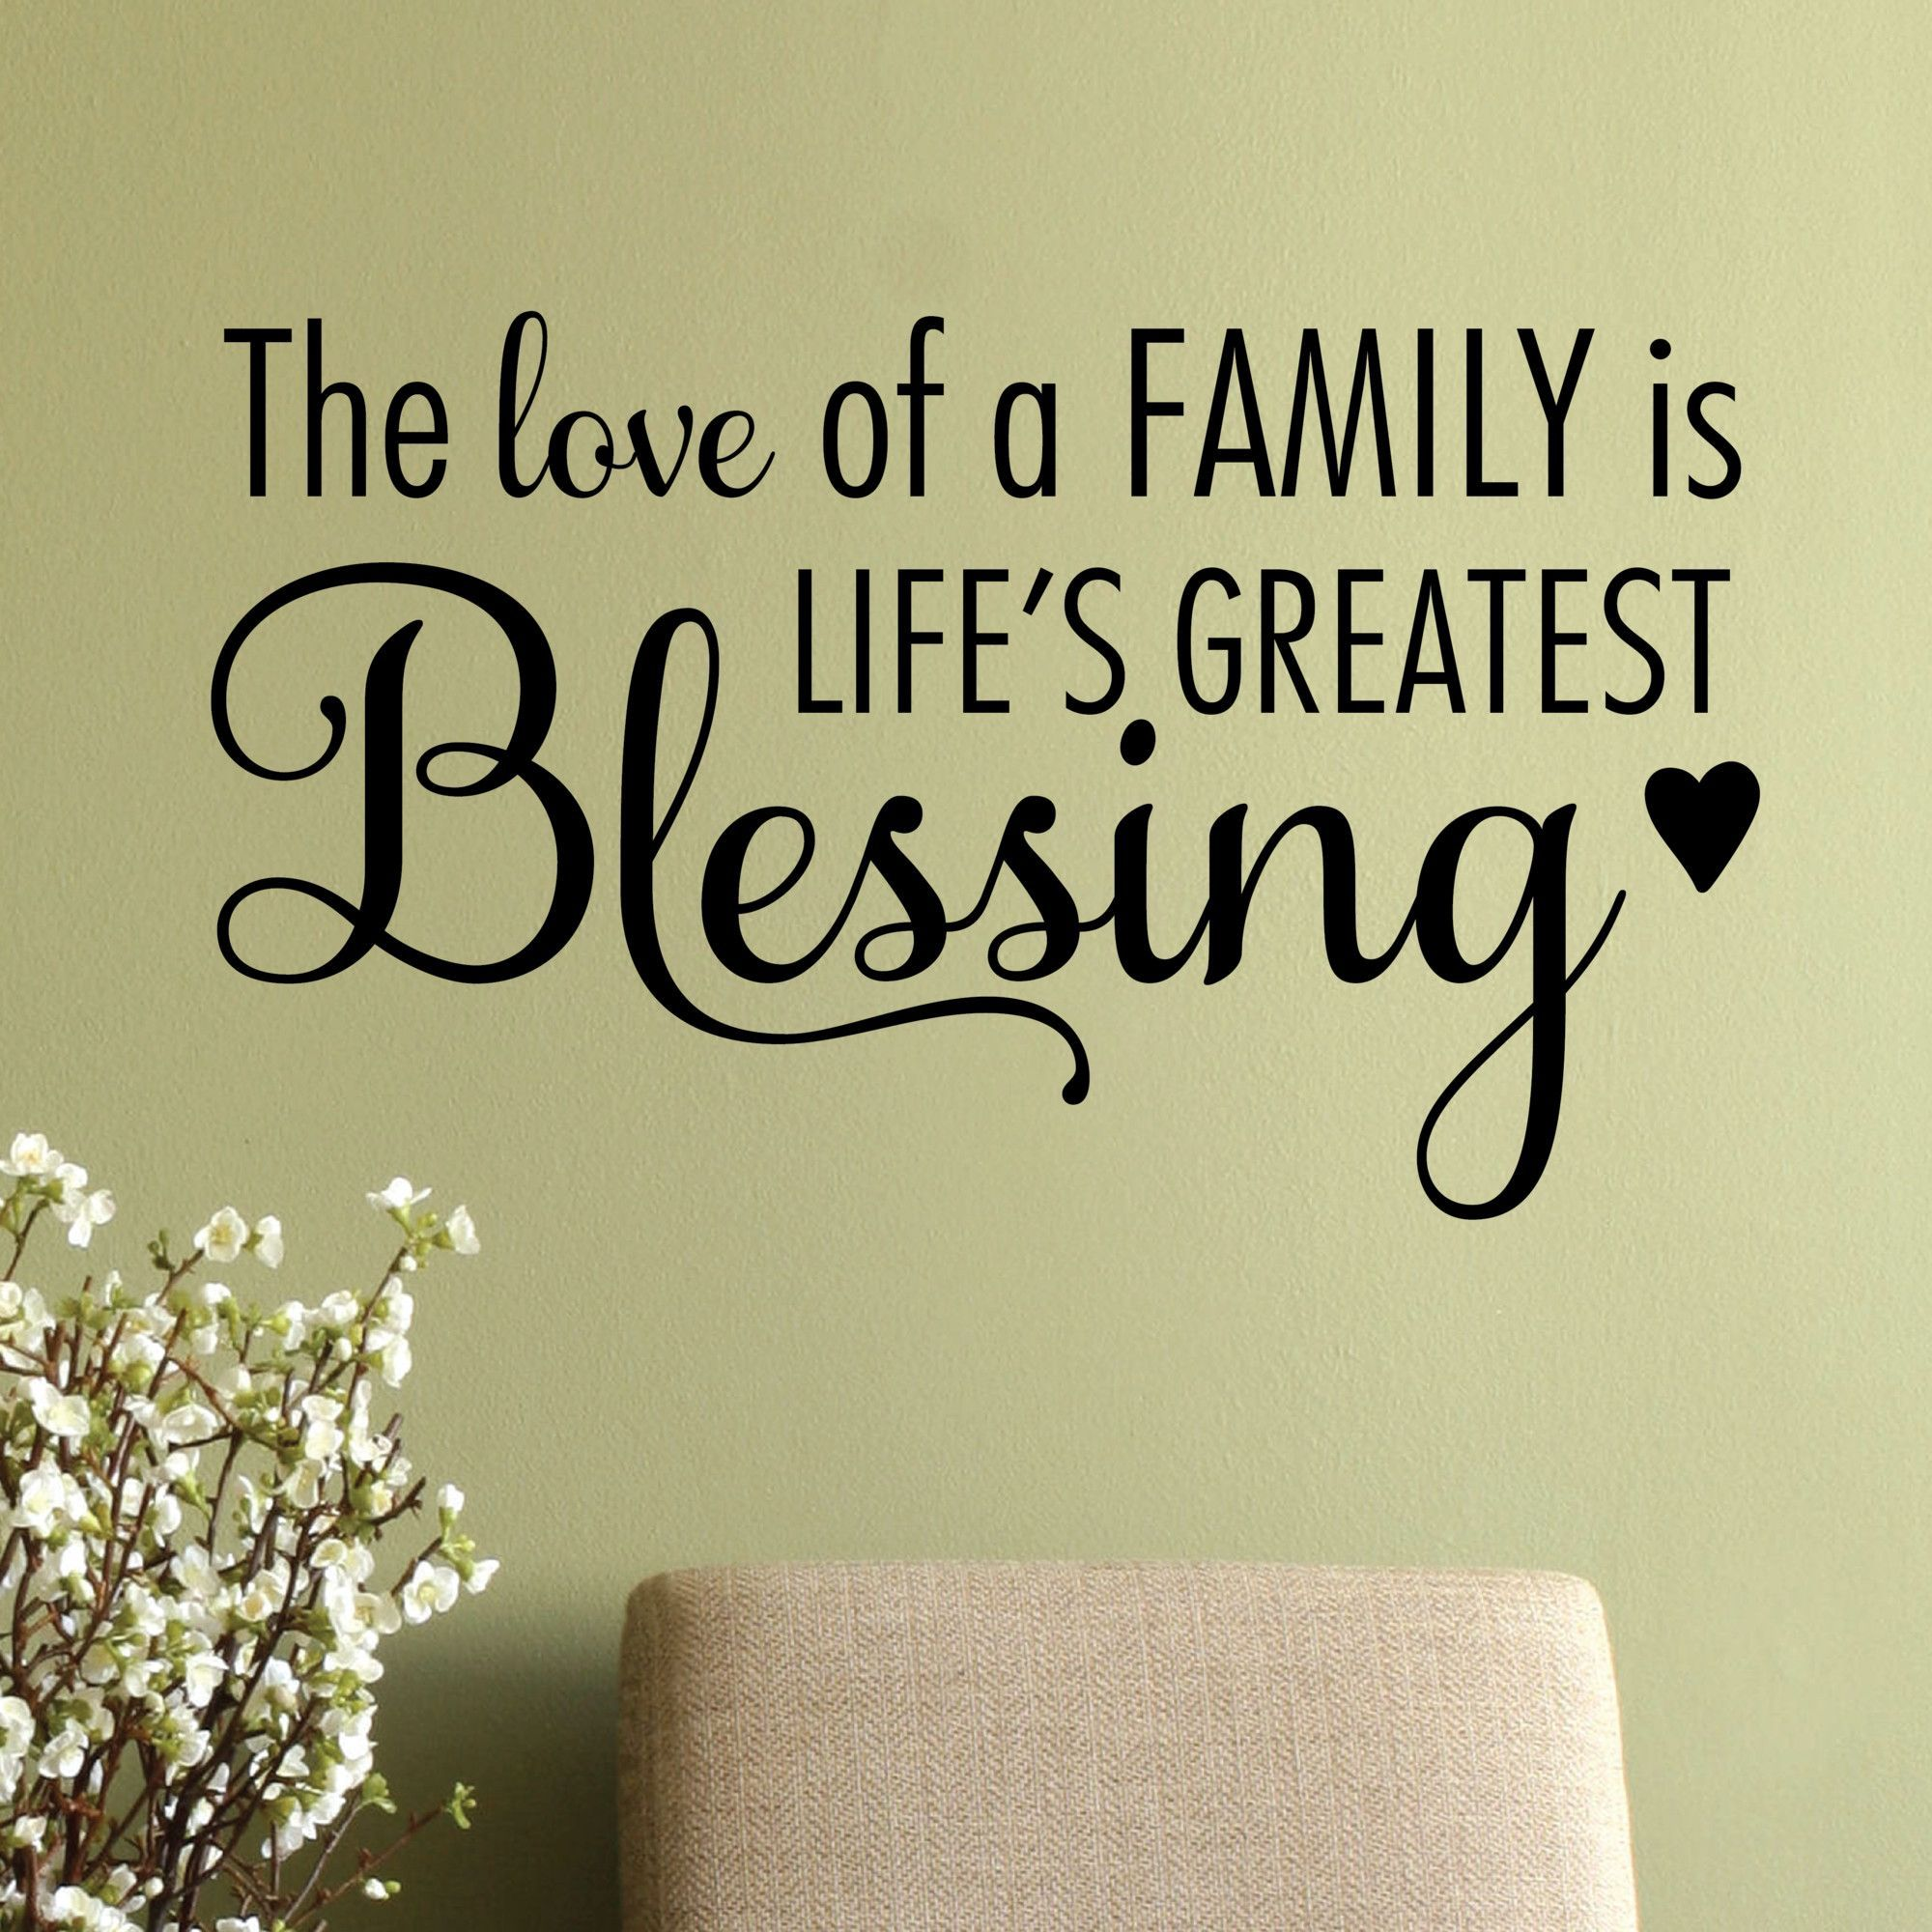 The Love of A Family Wall Quotes™ Decal | Family wall, Wall decals ...